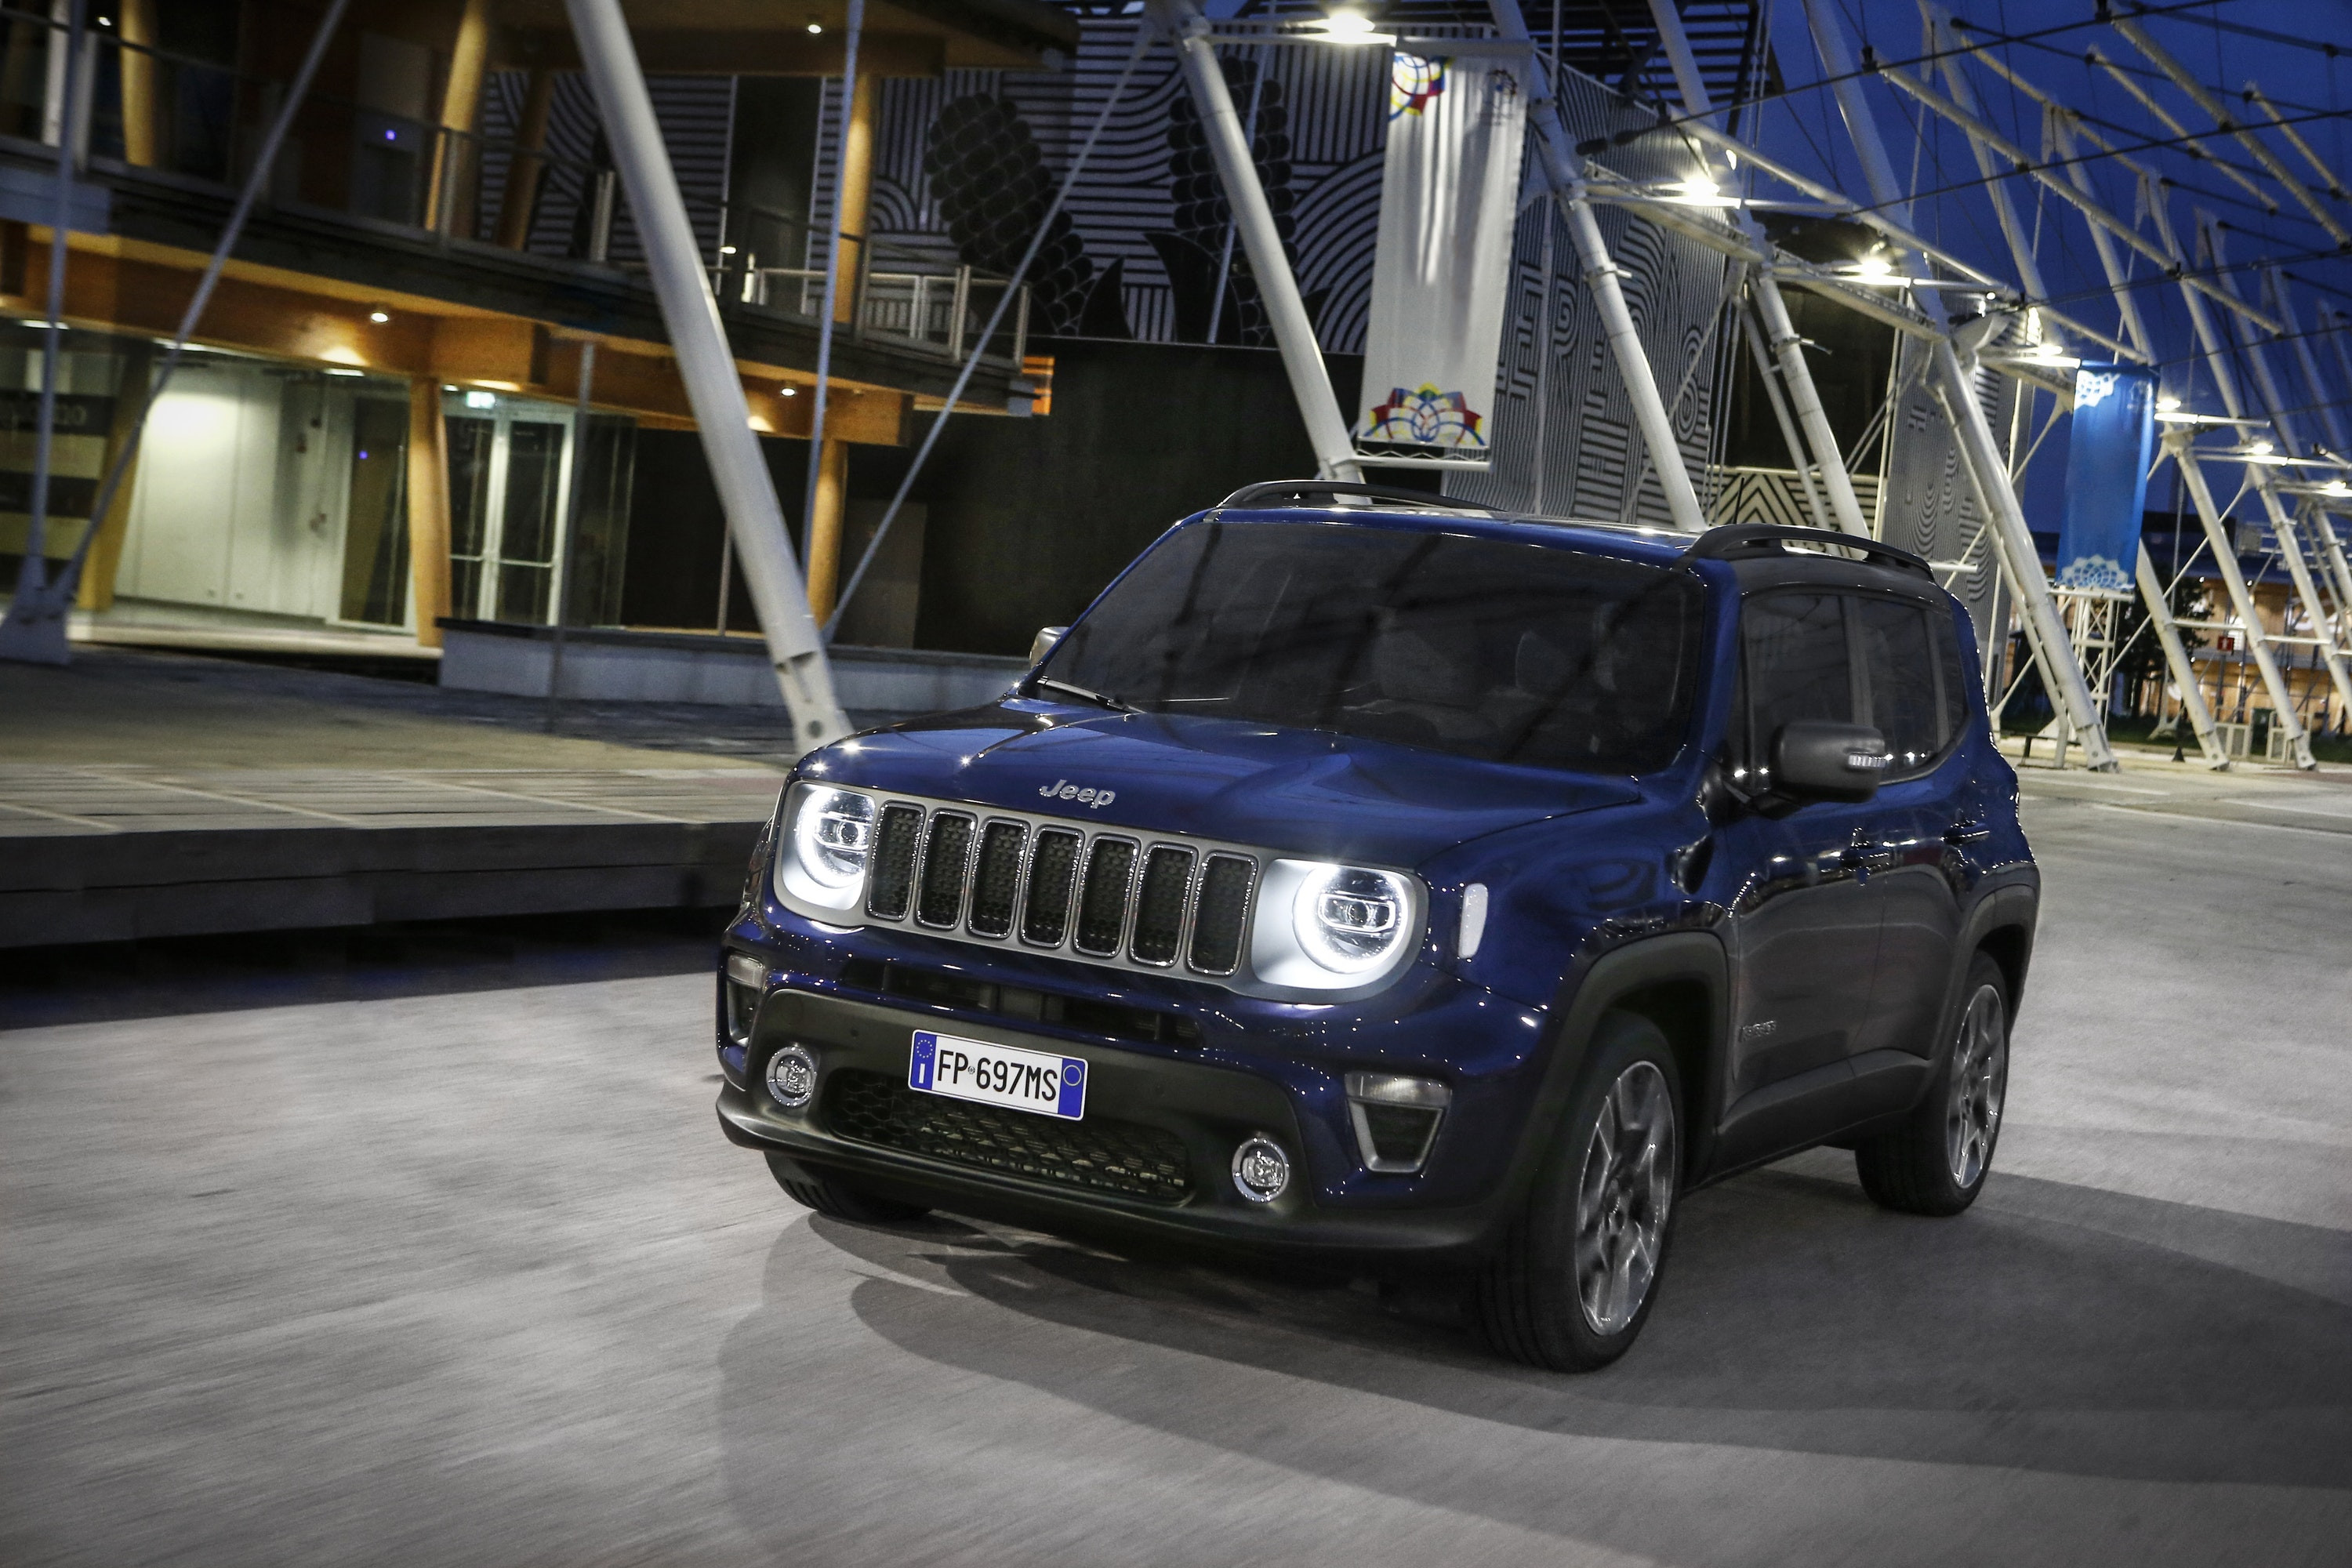 Blue Jeep Renegade driving at night